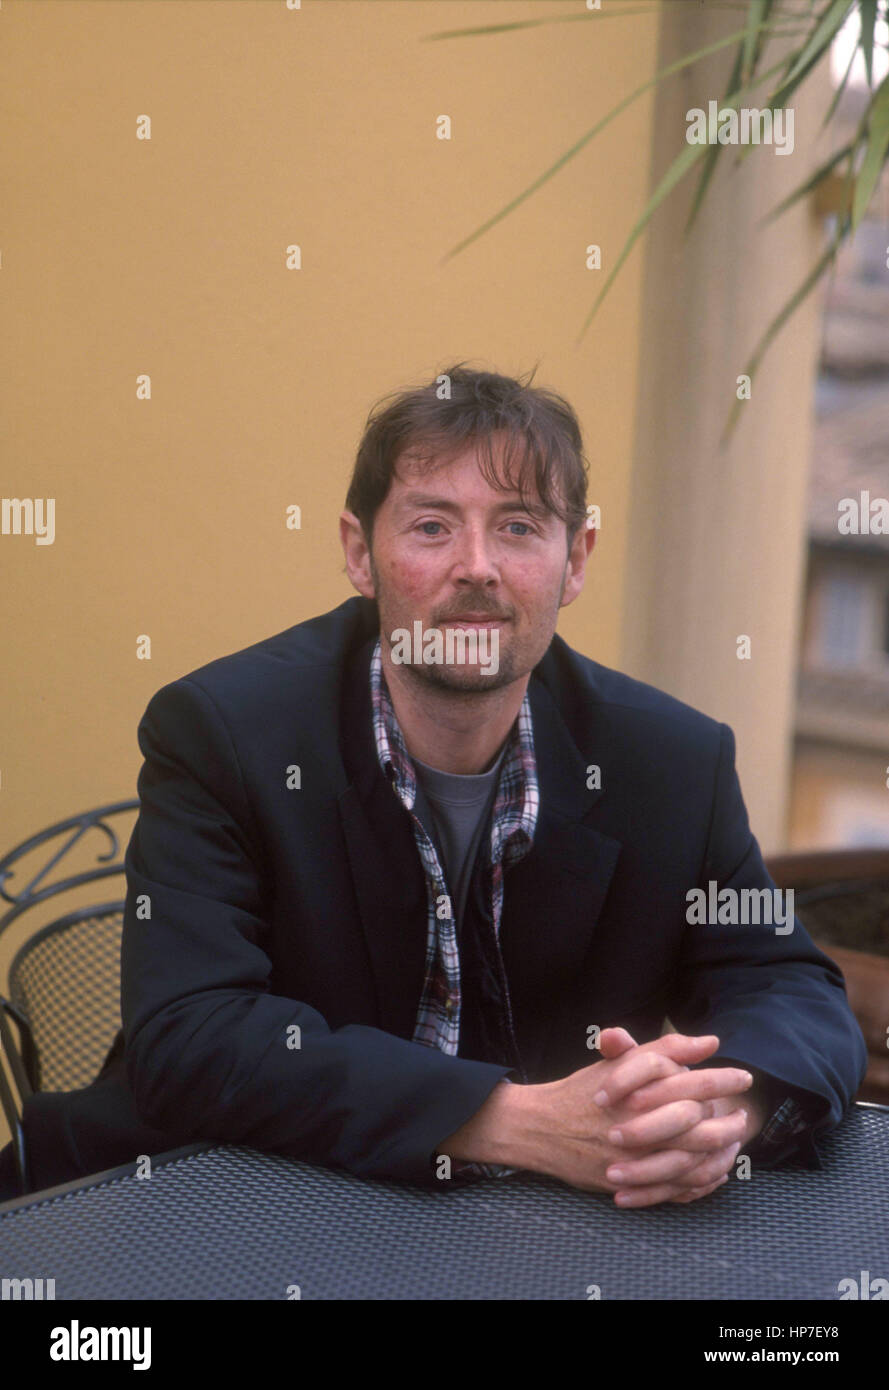 Pierre DBC (Dirty but clean) - Date : 20030101 ©Basso Cannarsa/Opale - Stock Image